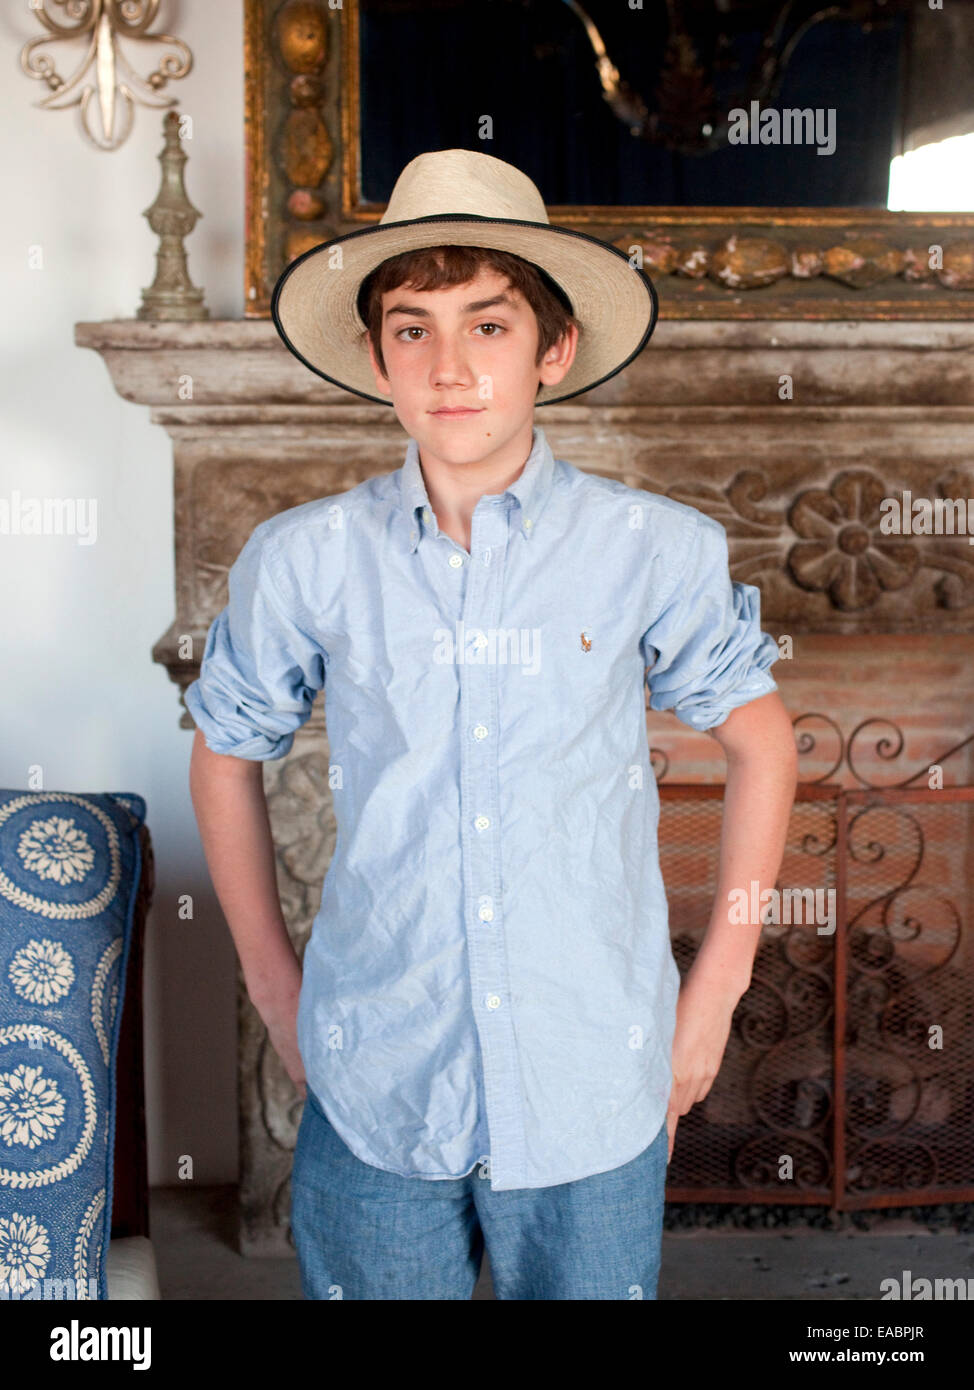 portrait of young boy wearing straw hat in mexican style room with